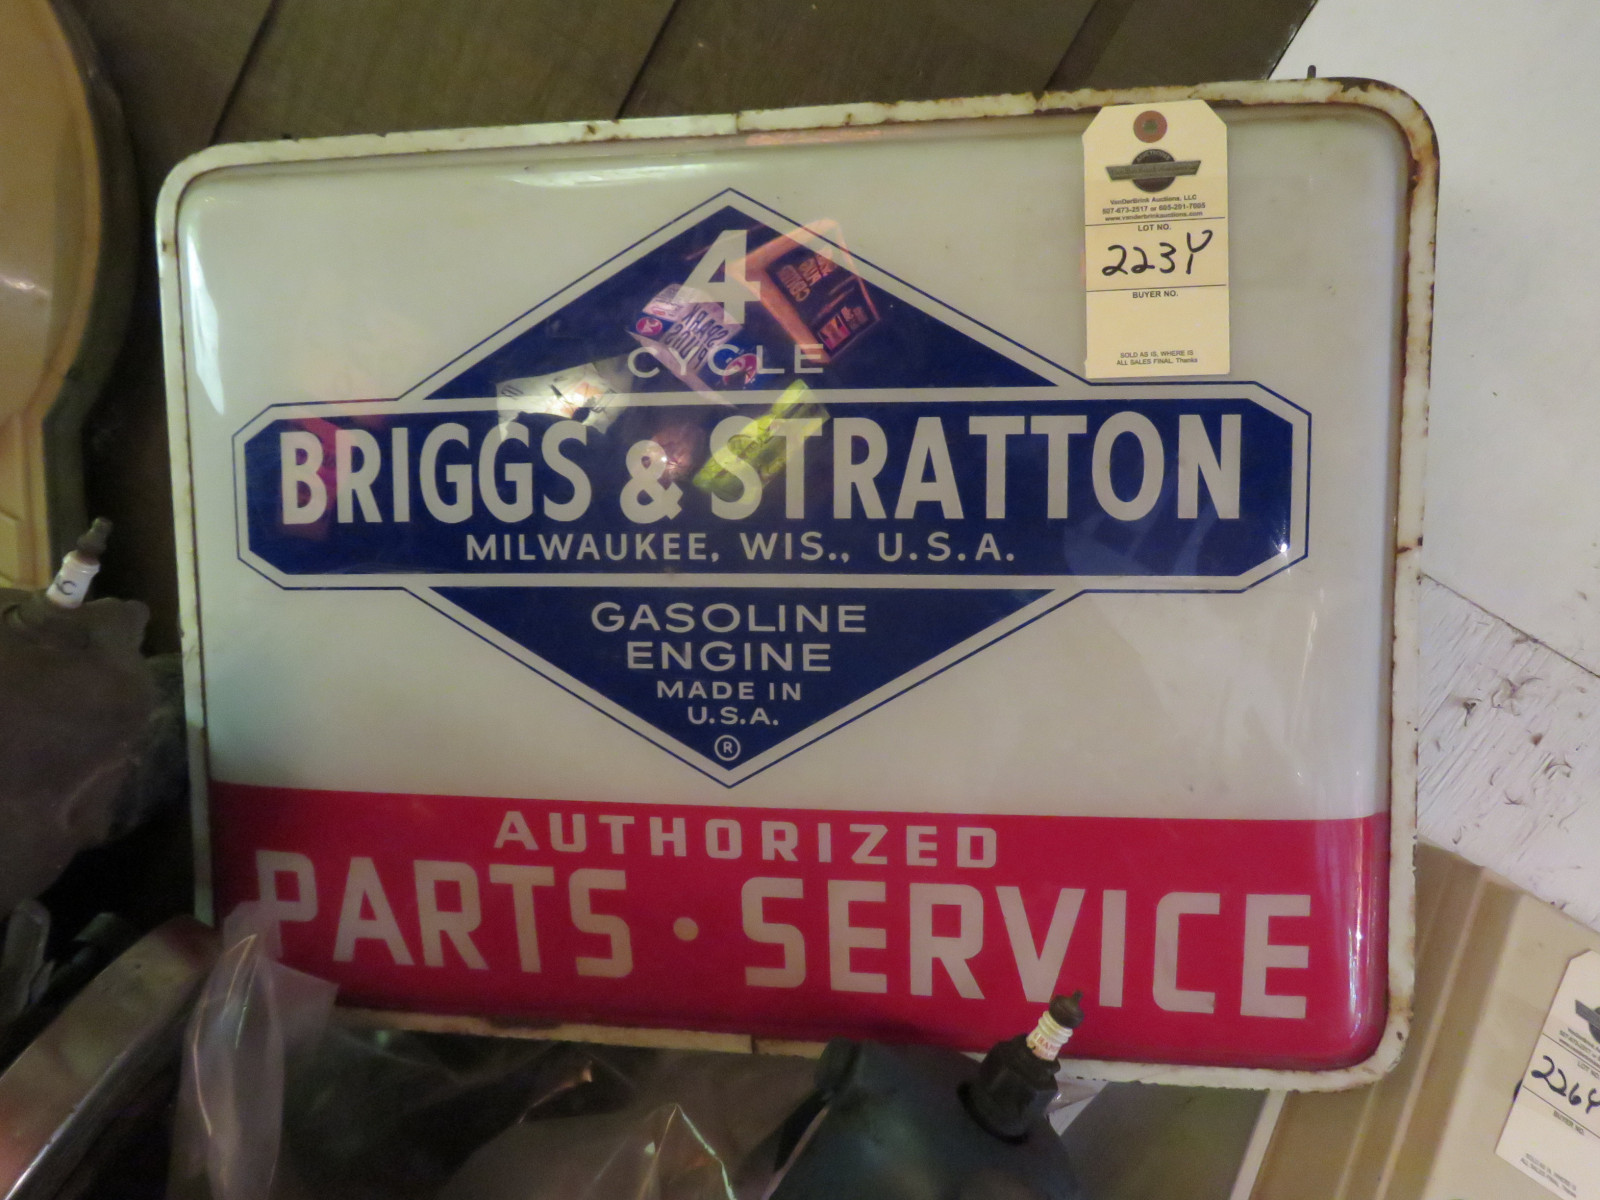 Briggs & Stratton Light Advertising Service Sign- Nonworking - Image 1